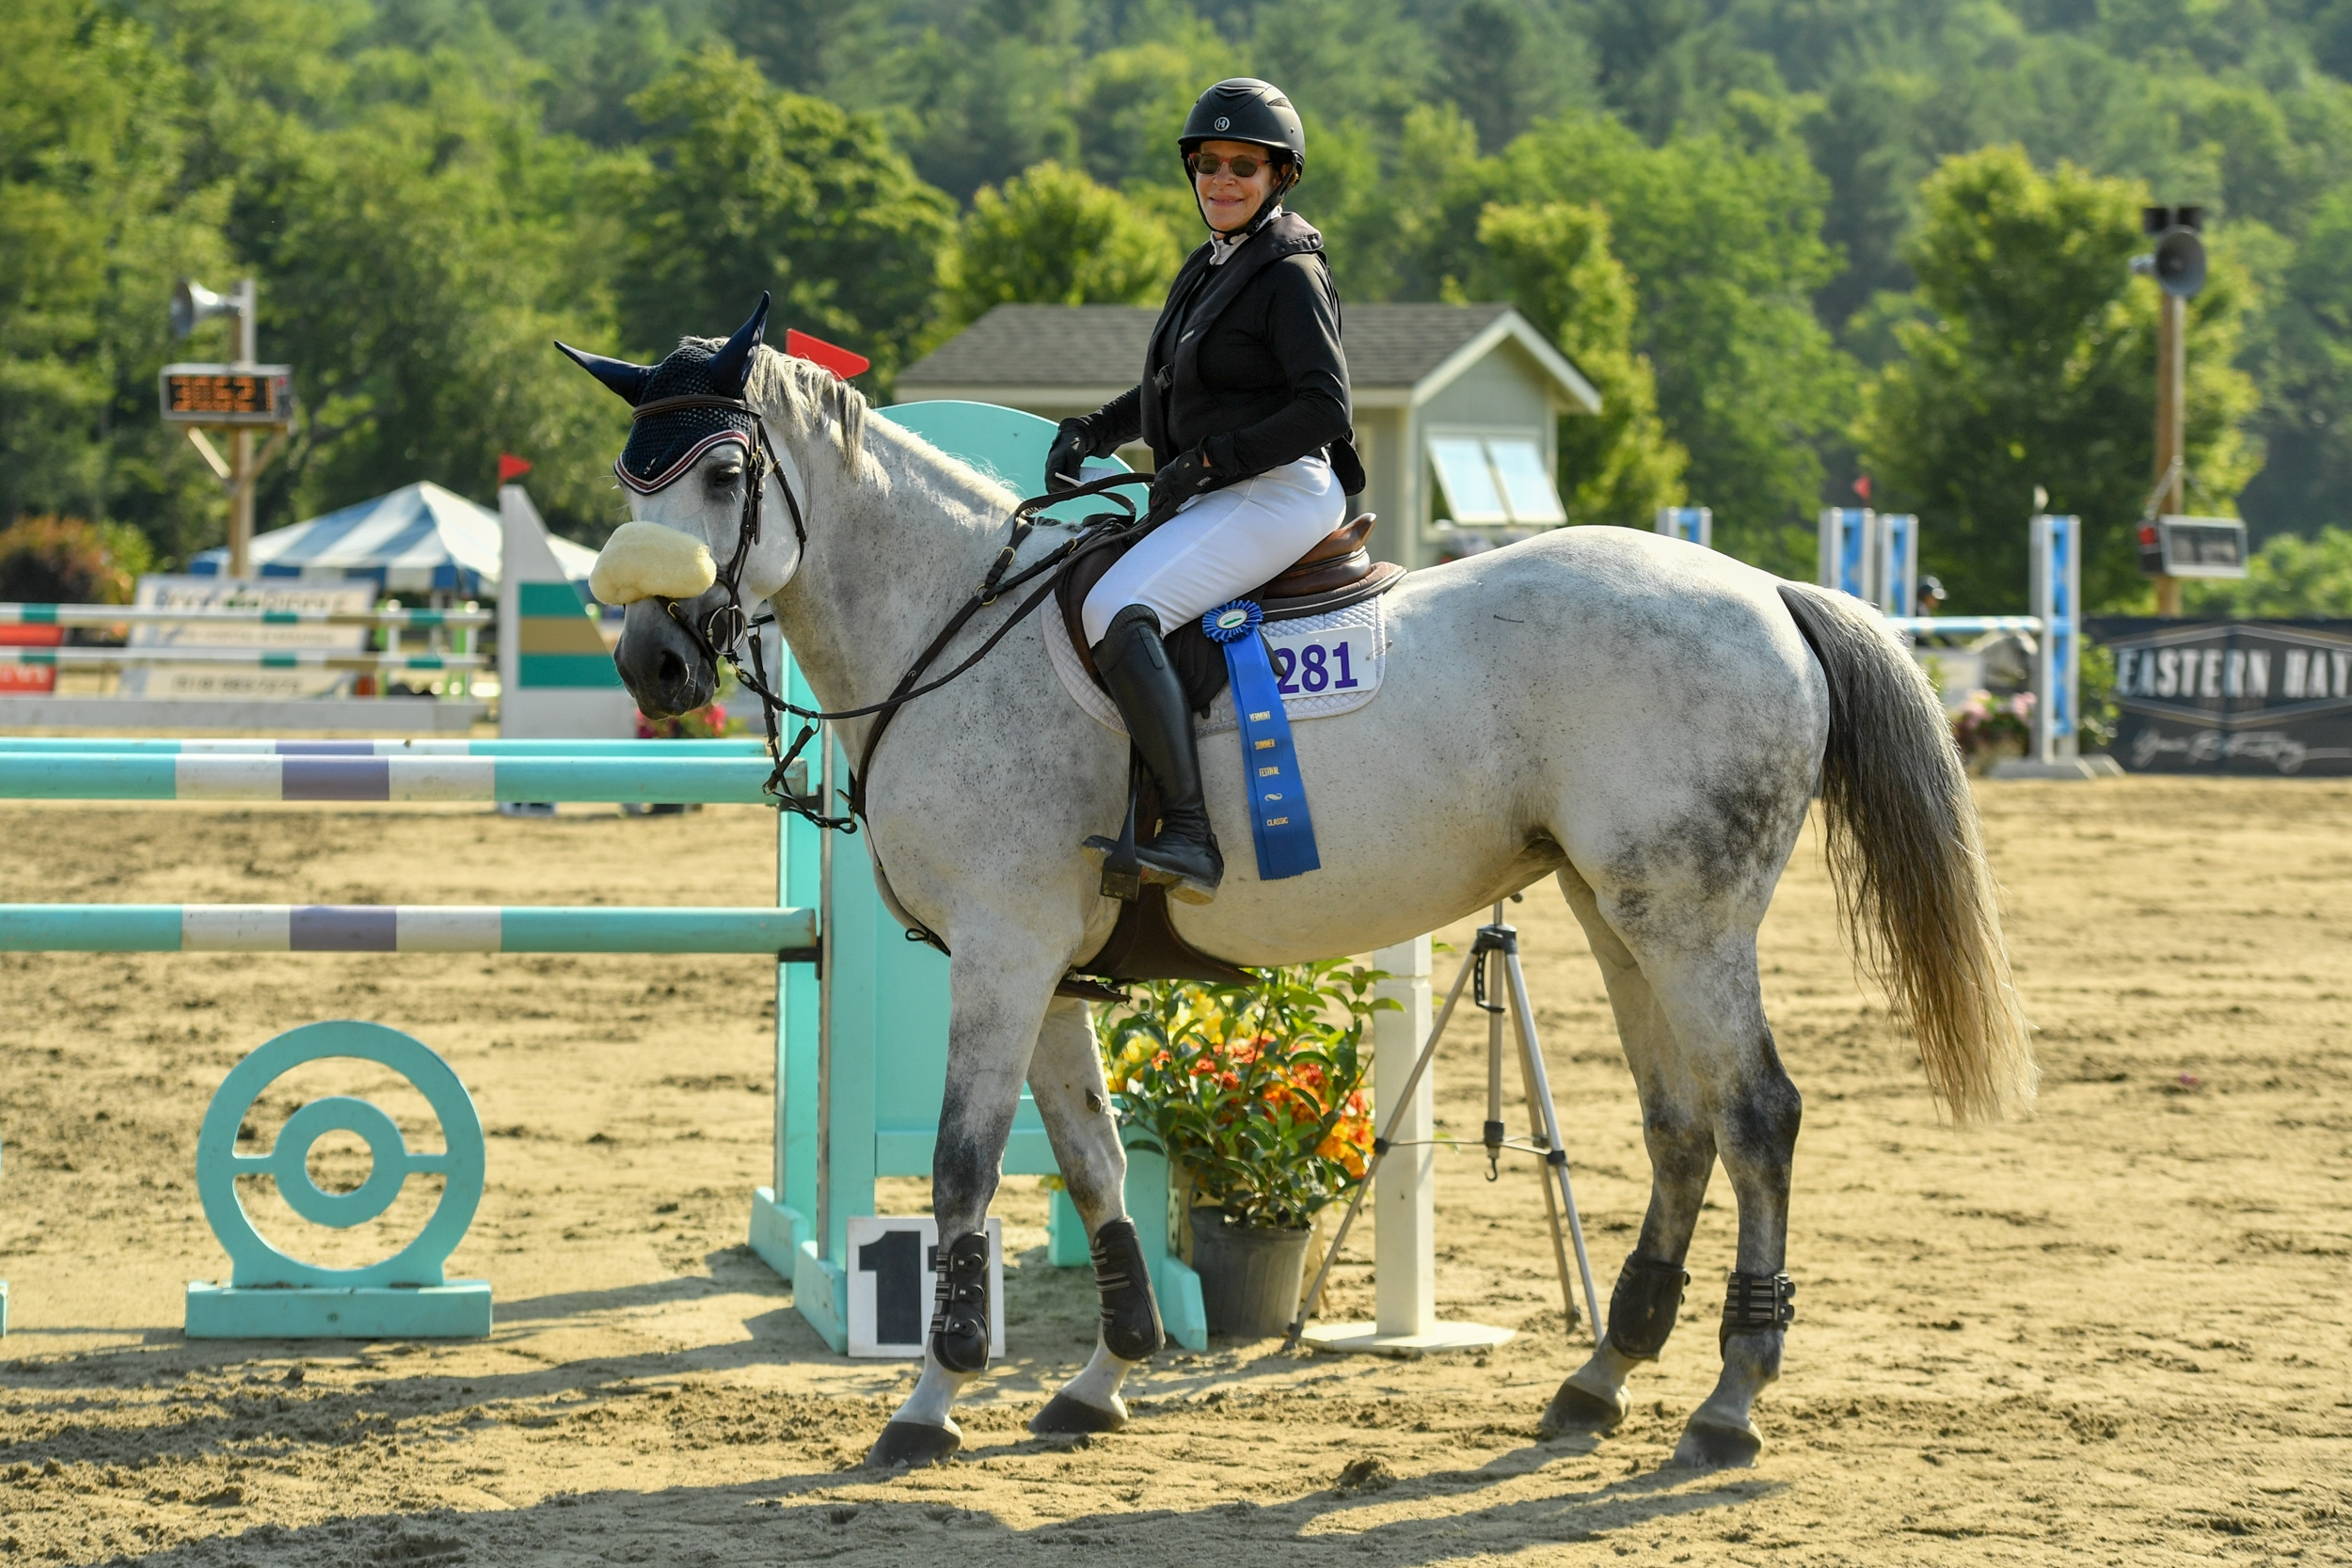 Michelle Stacy of Ipswich, MA, was awarded the first-place honor in the $2,500 Marshall & Sterling Adult Amateur Jumper Classic on Sunday, July 28, at the Vermont Summer Festival, which continues through August 11 at Harold Beebe Farm in East Dorset, VT. <br><b>Photo by <a href='https://www.andrewryback.com/' target='_blank'>Andrew Ryback Photography</a></b>